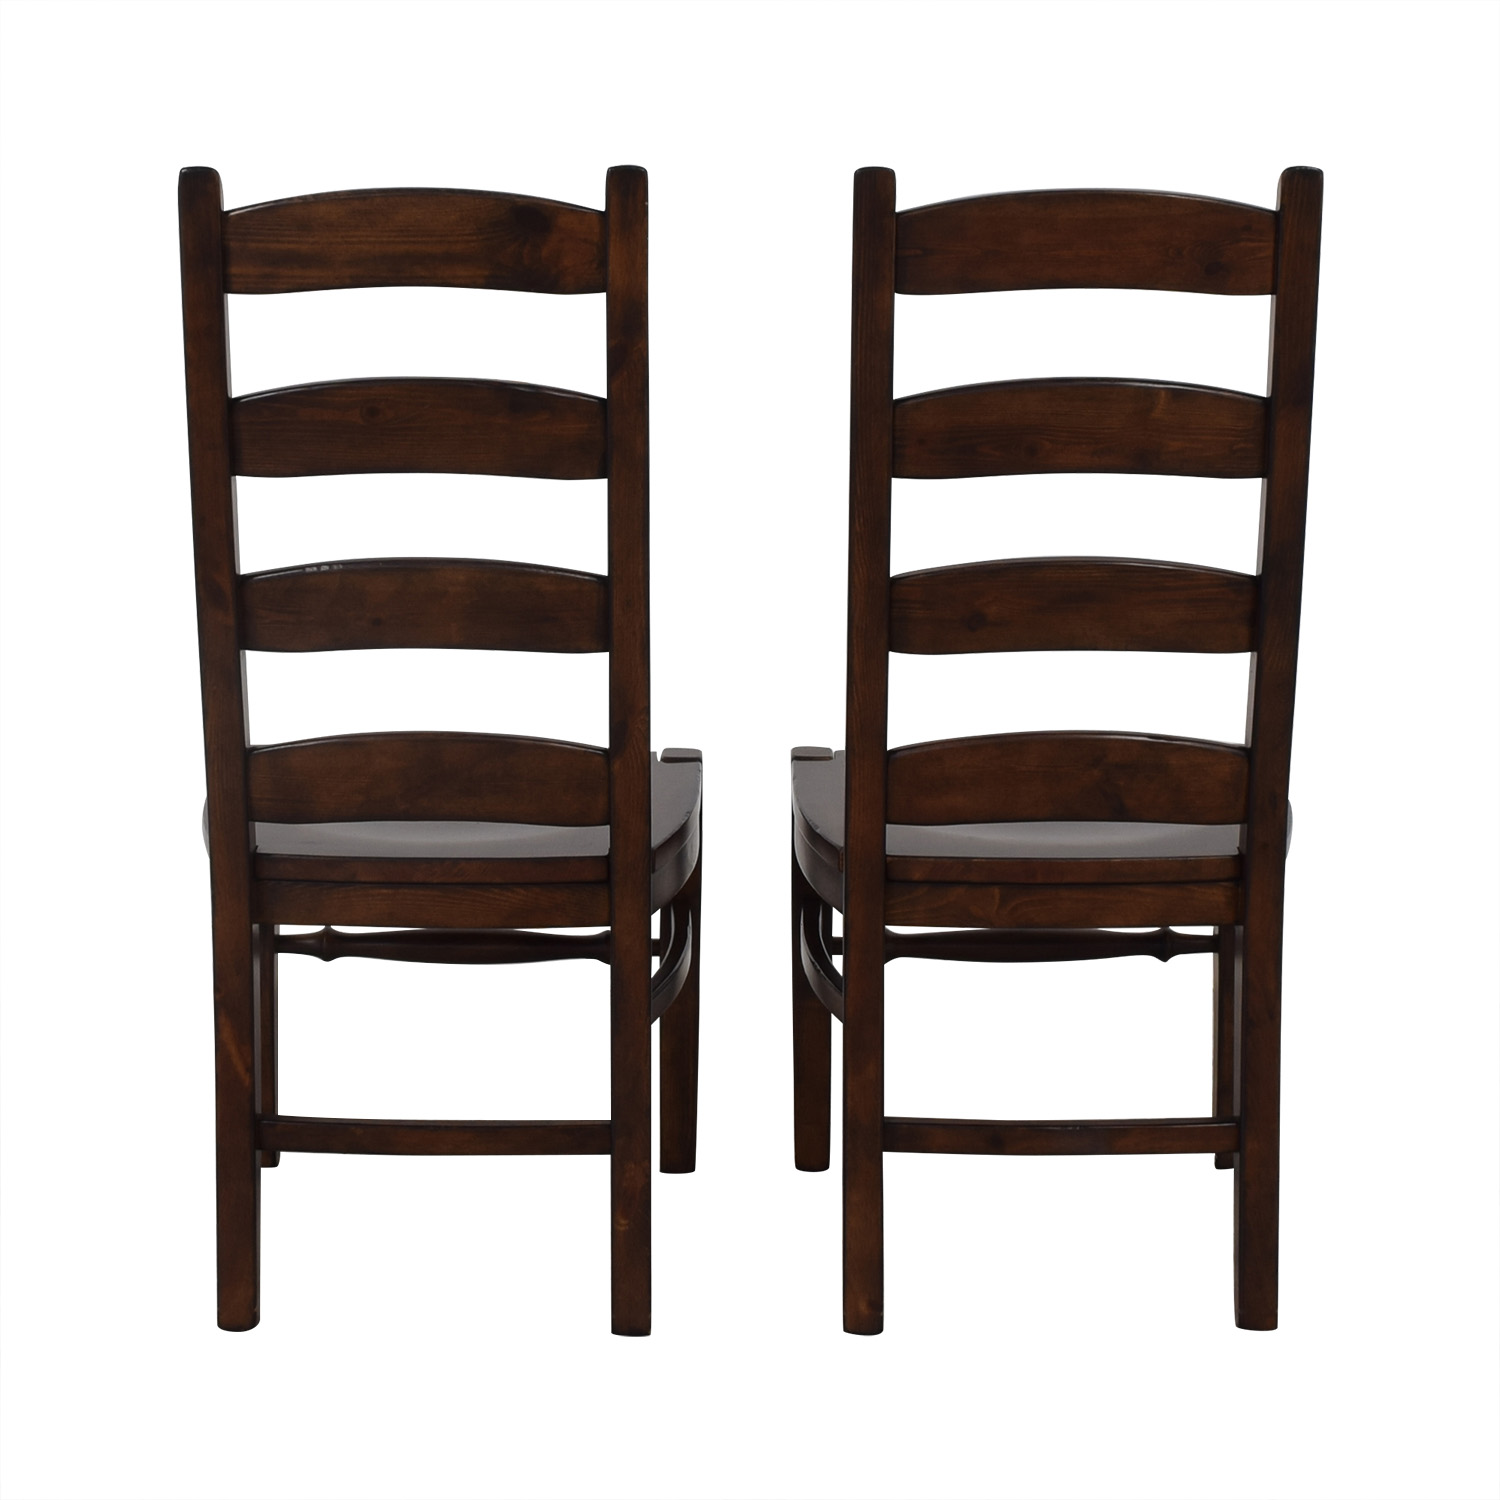 Pottery Barn Pottery Barn Wynn Ladderback Dining Chairs Dining Chairs